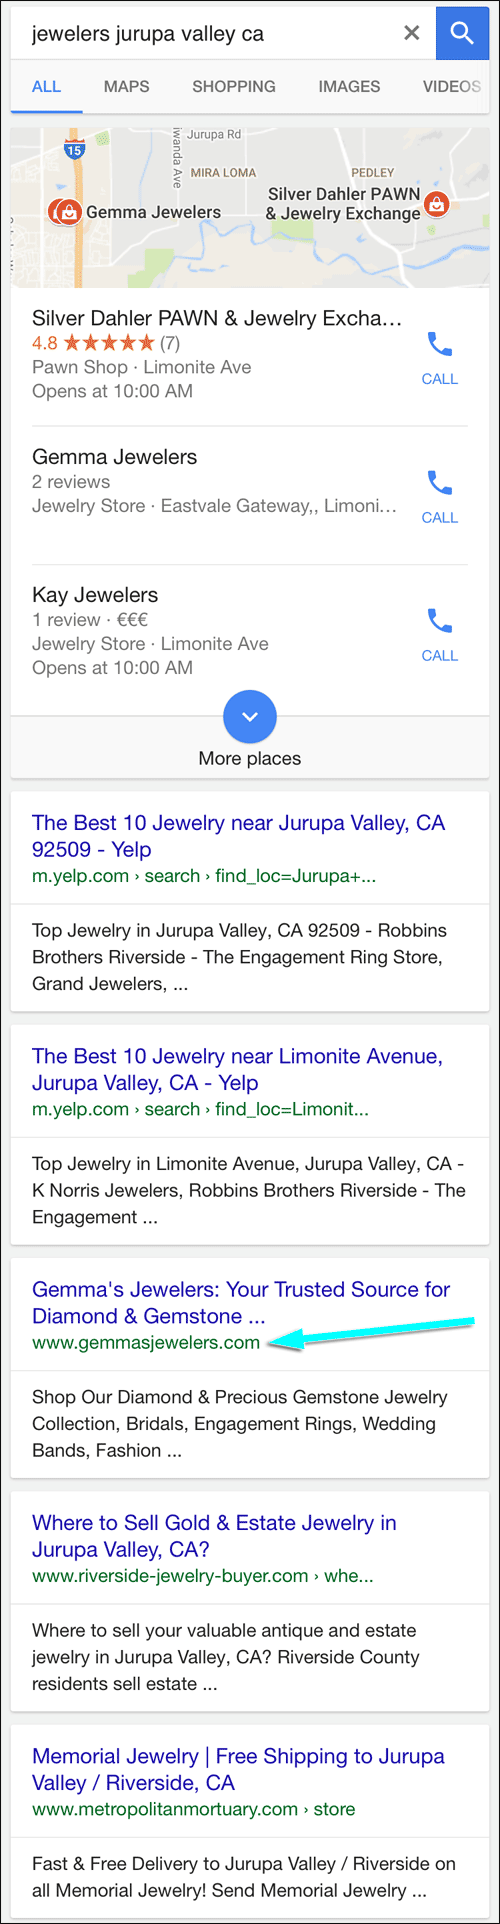 How Jewelers in Jurupa Valley, CA Compete 1524-mobile-serp-8